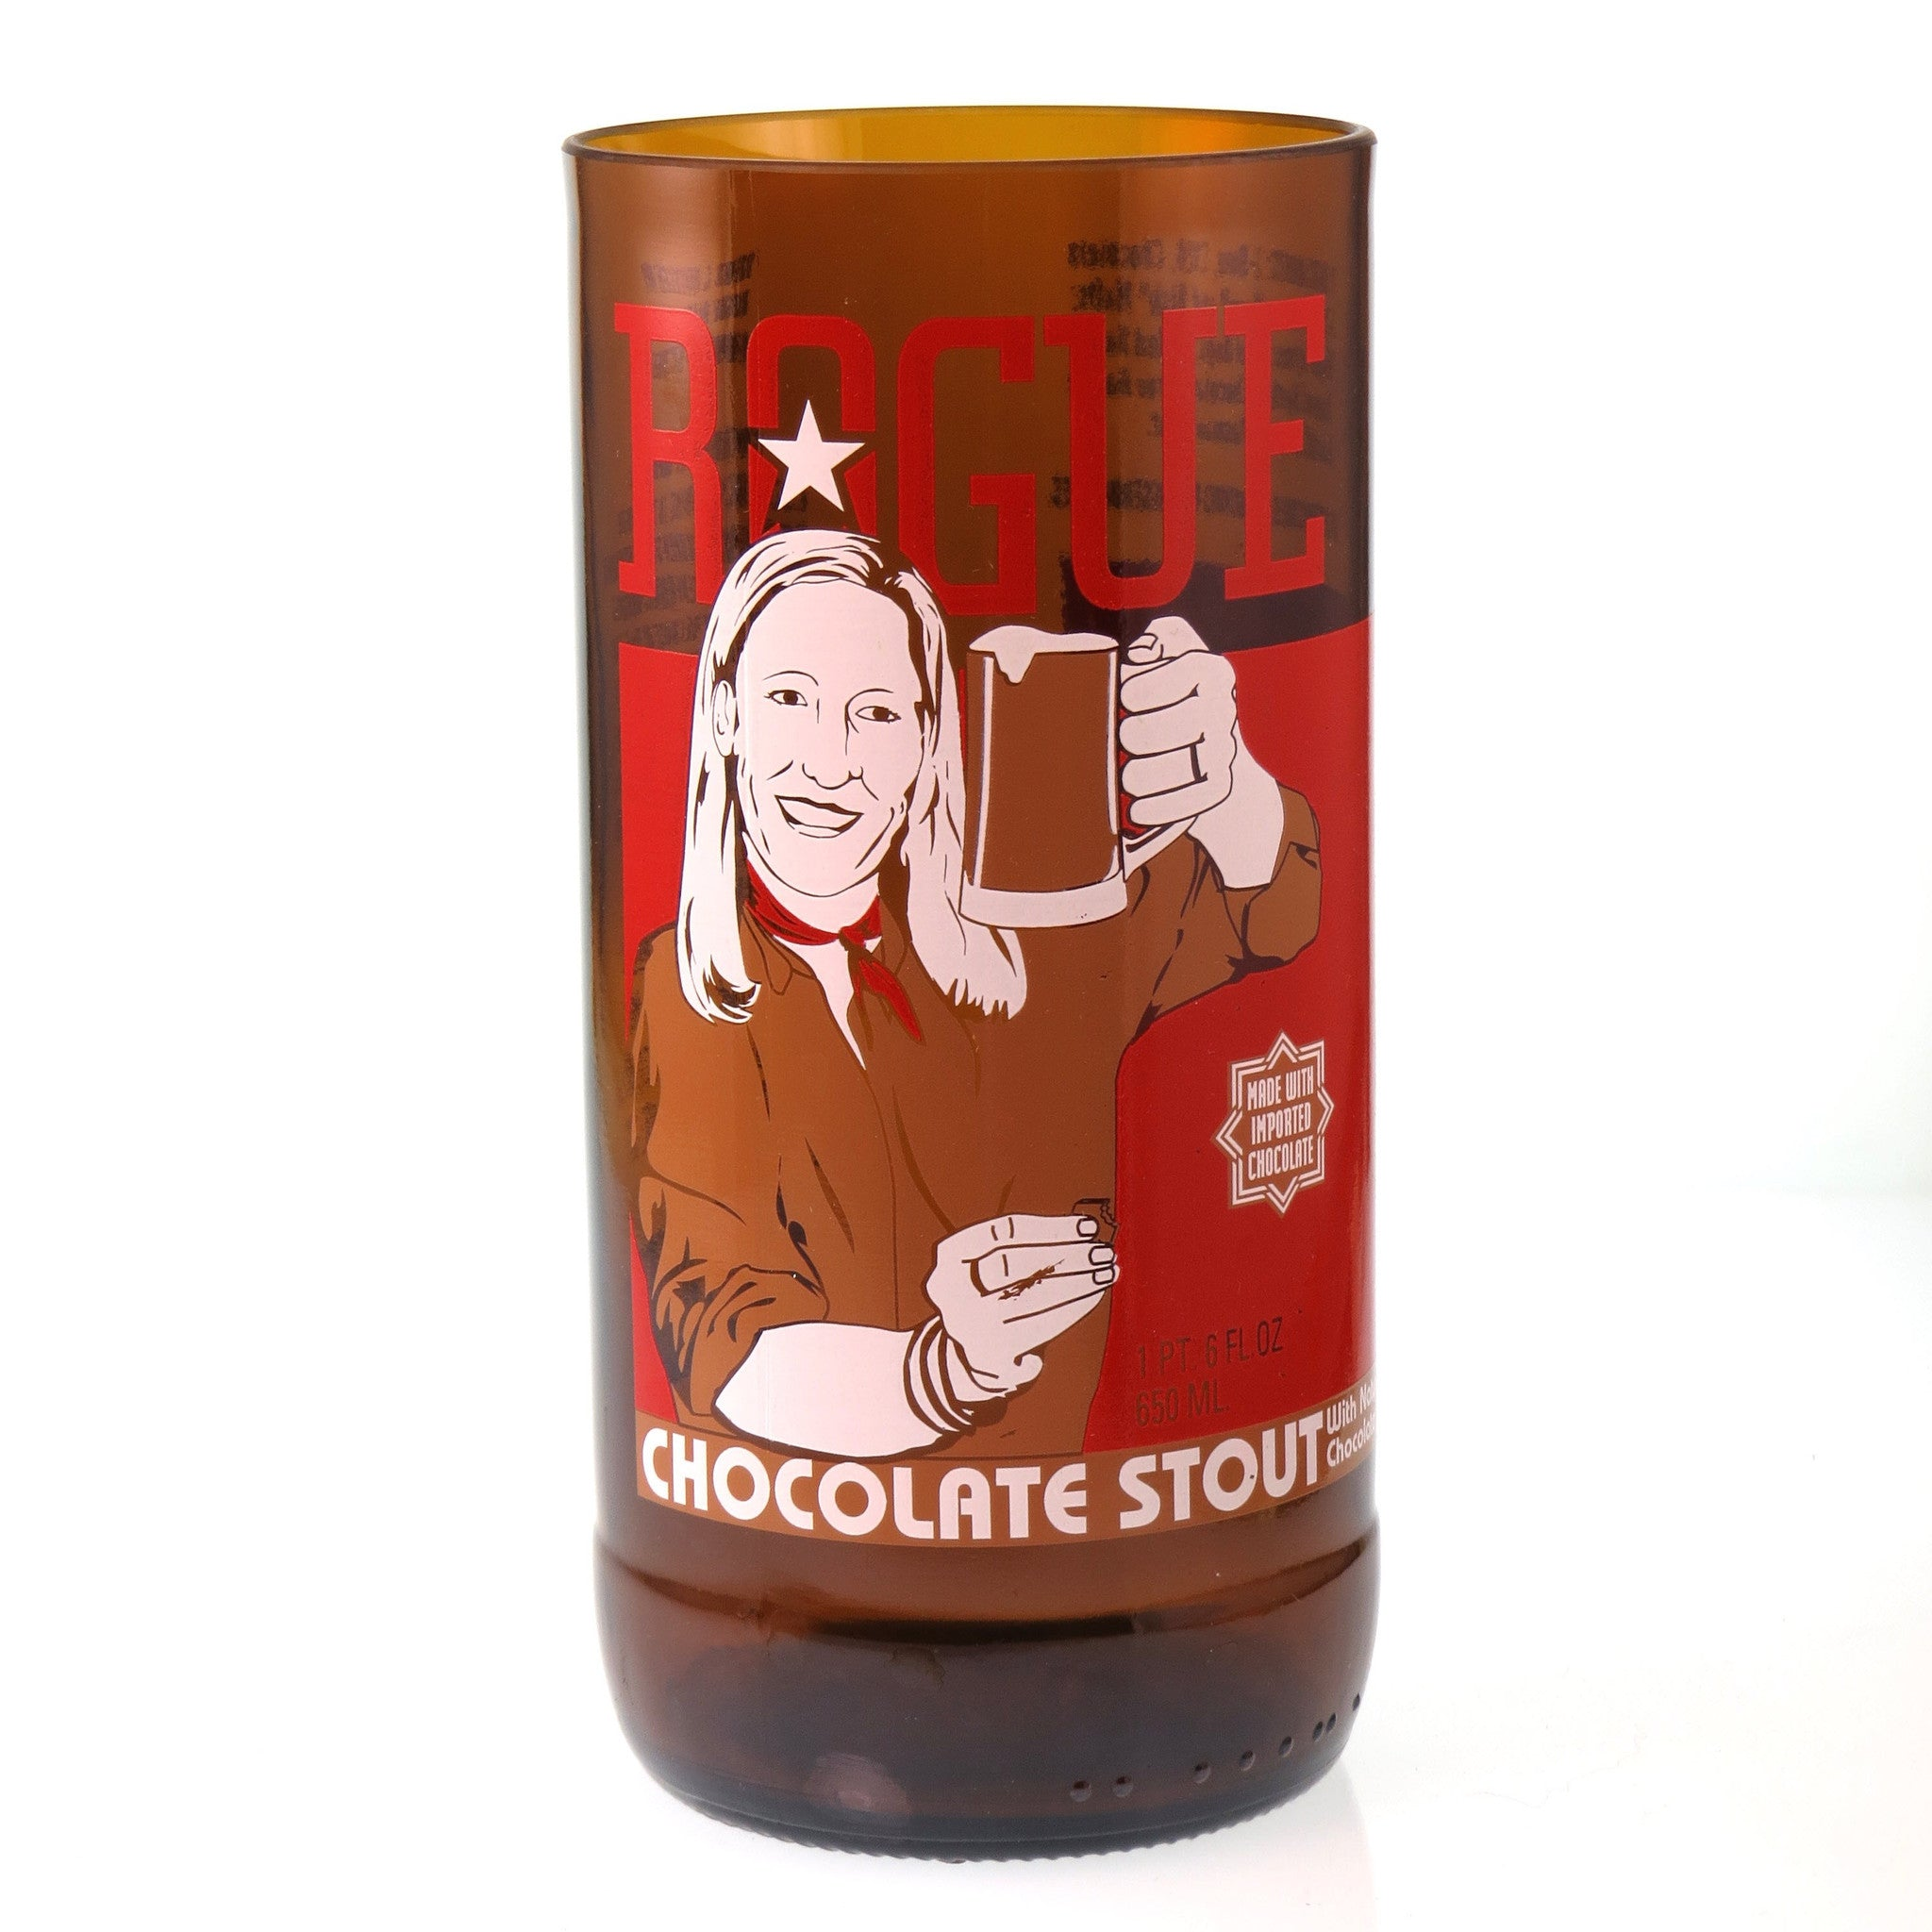 Rogue Chocolate Stout Beer Bottle Glass - The Spotted Door